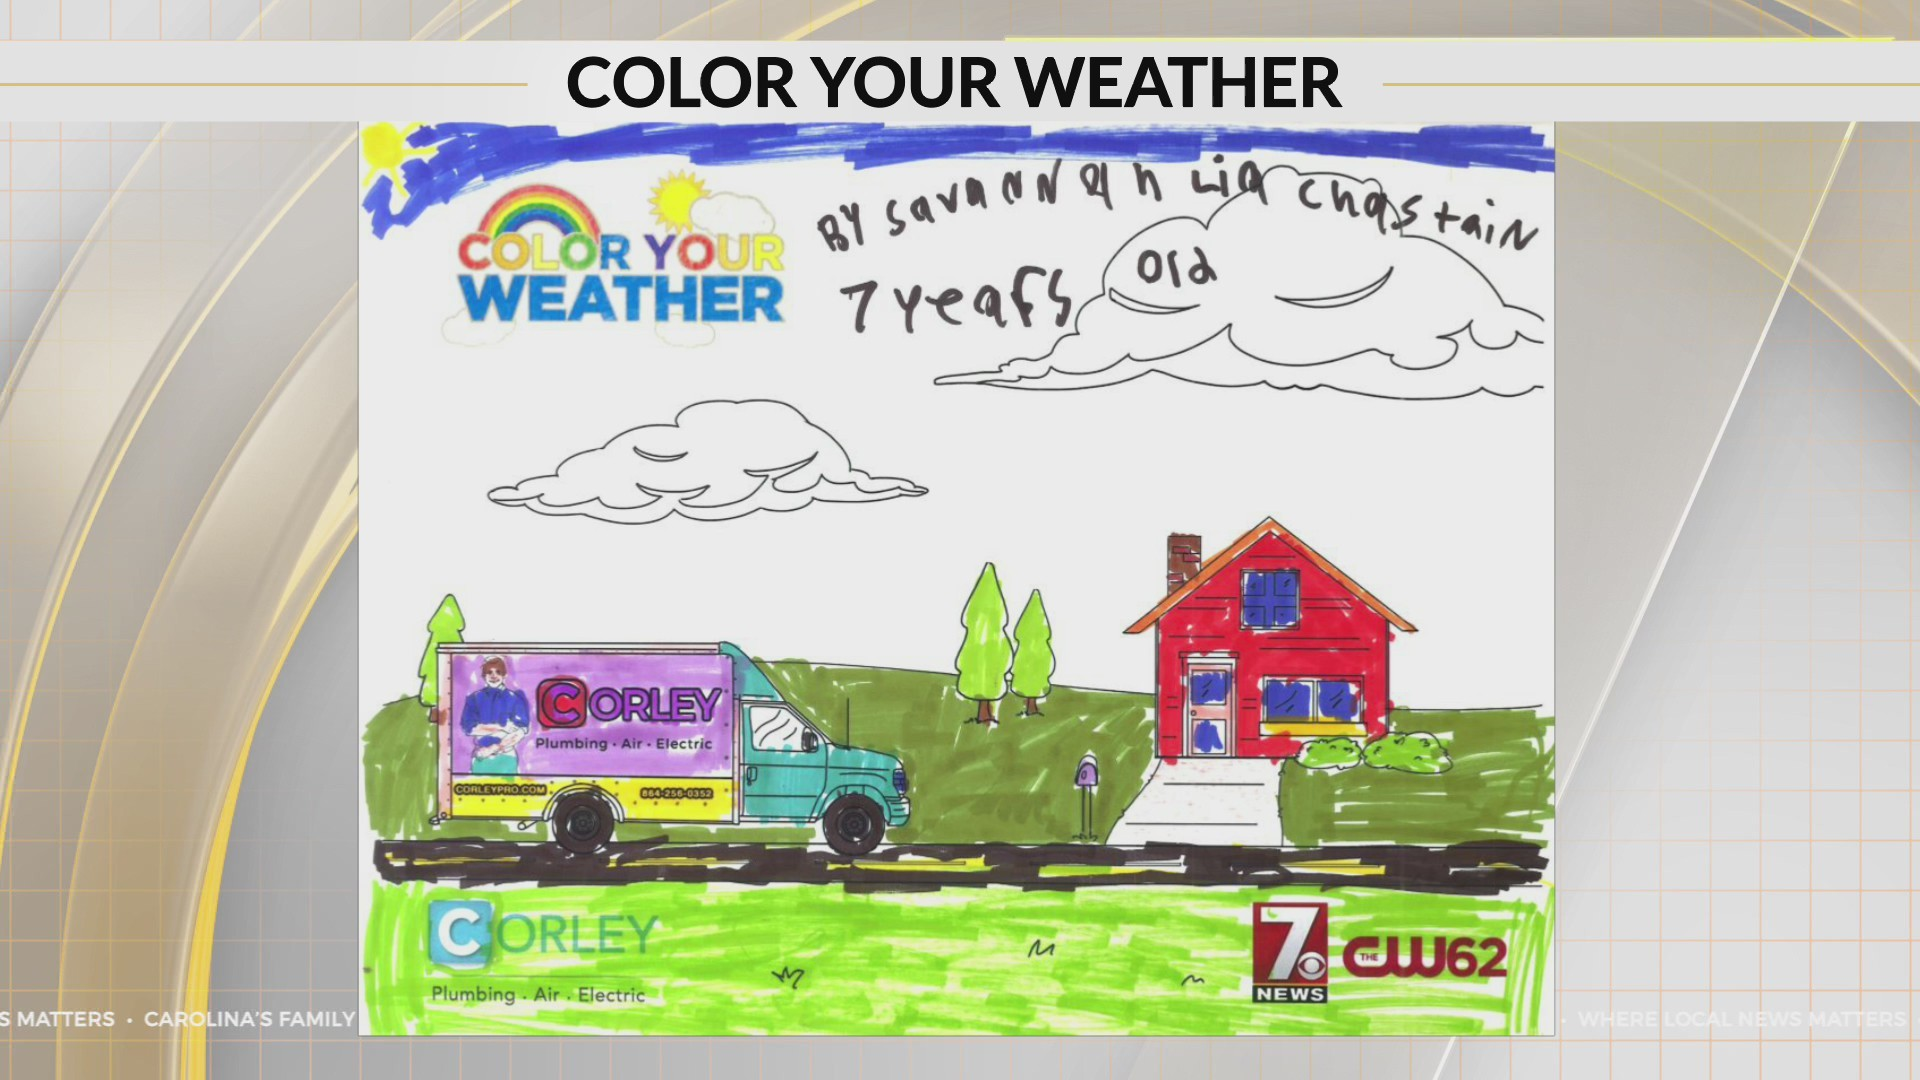 Color Your Weather: Savannah